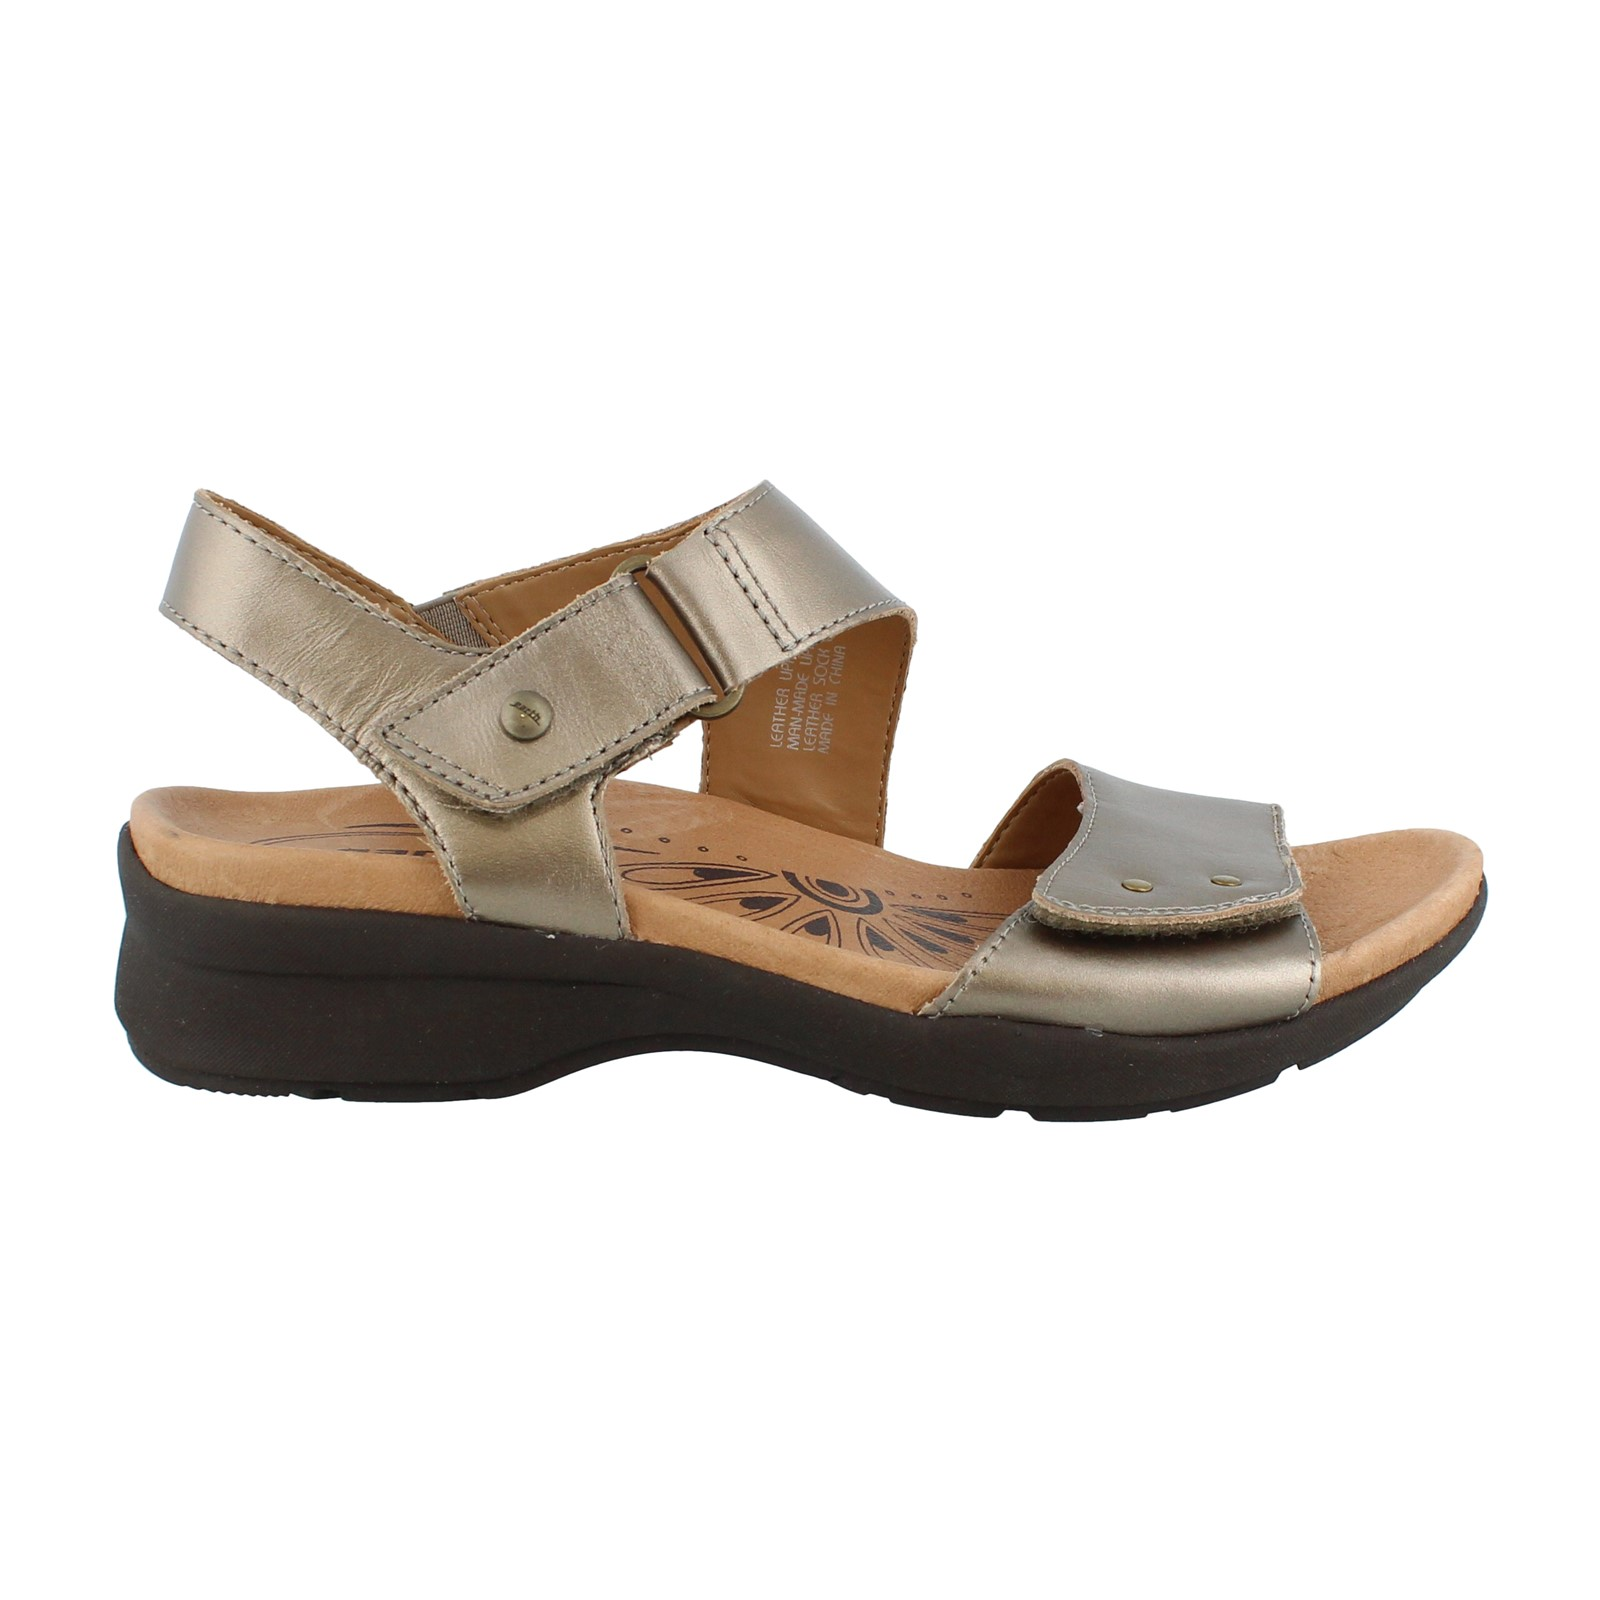 Women's Earth, Peak Mid Heel Sandals